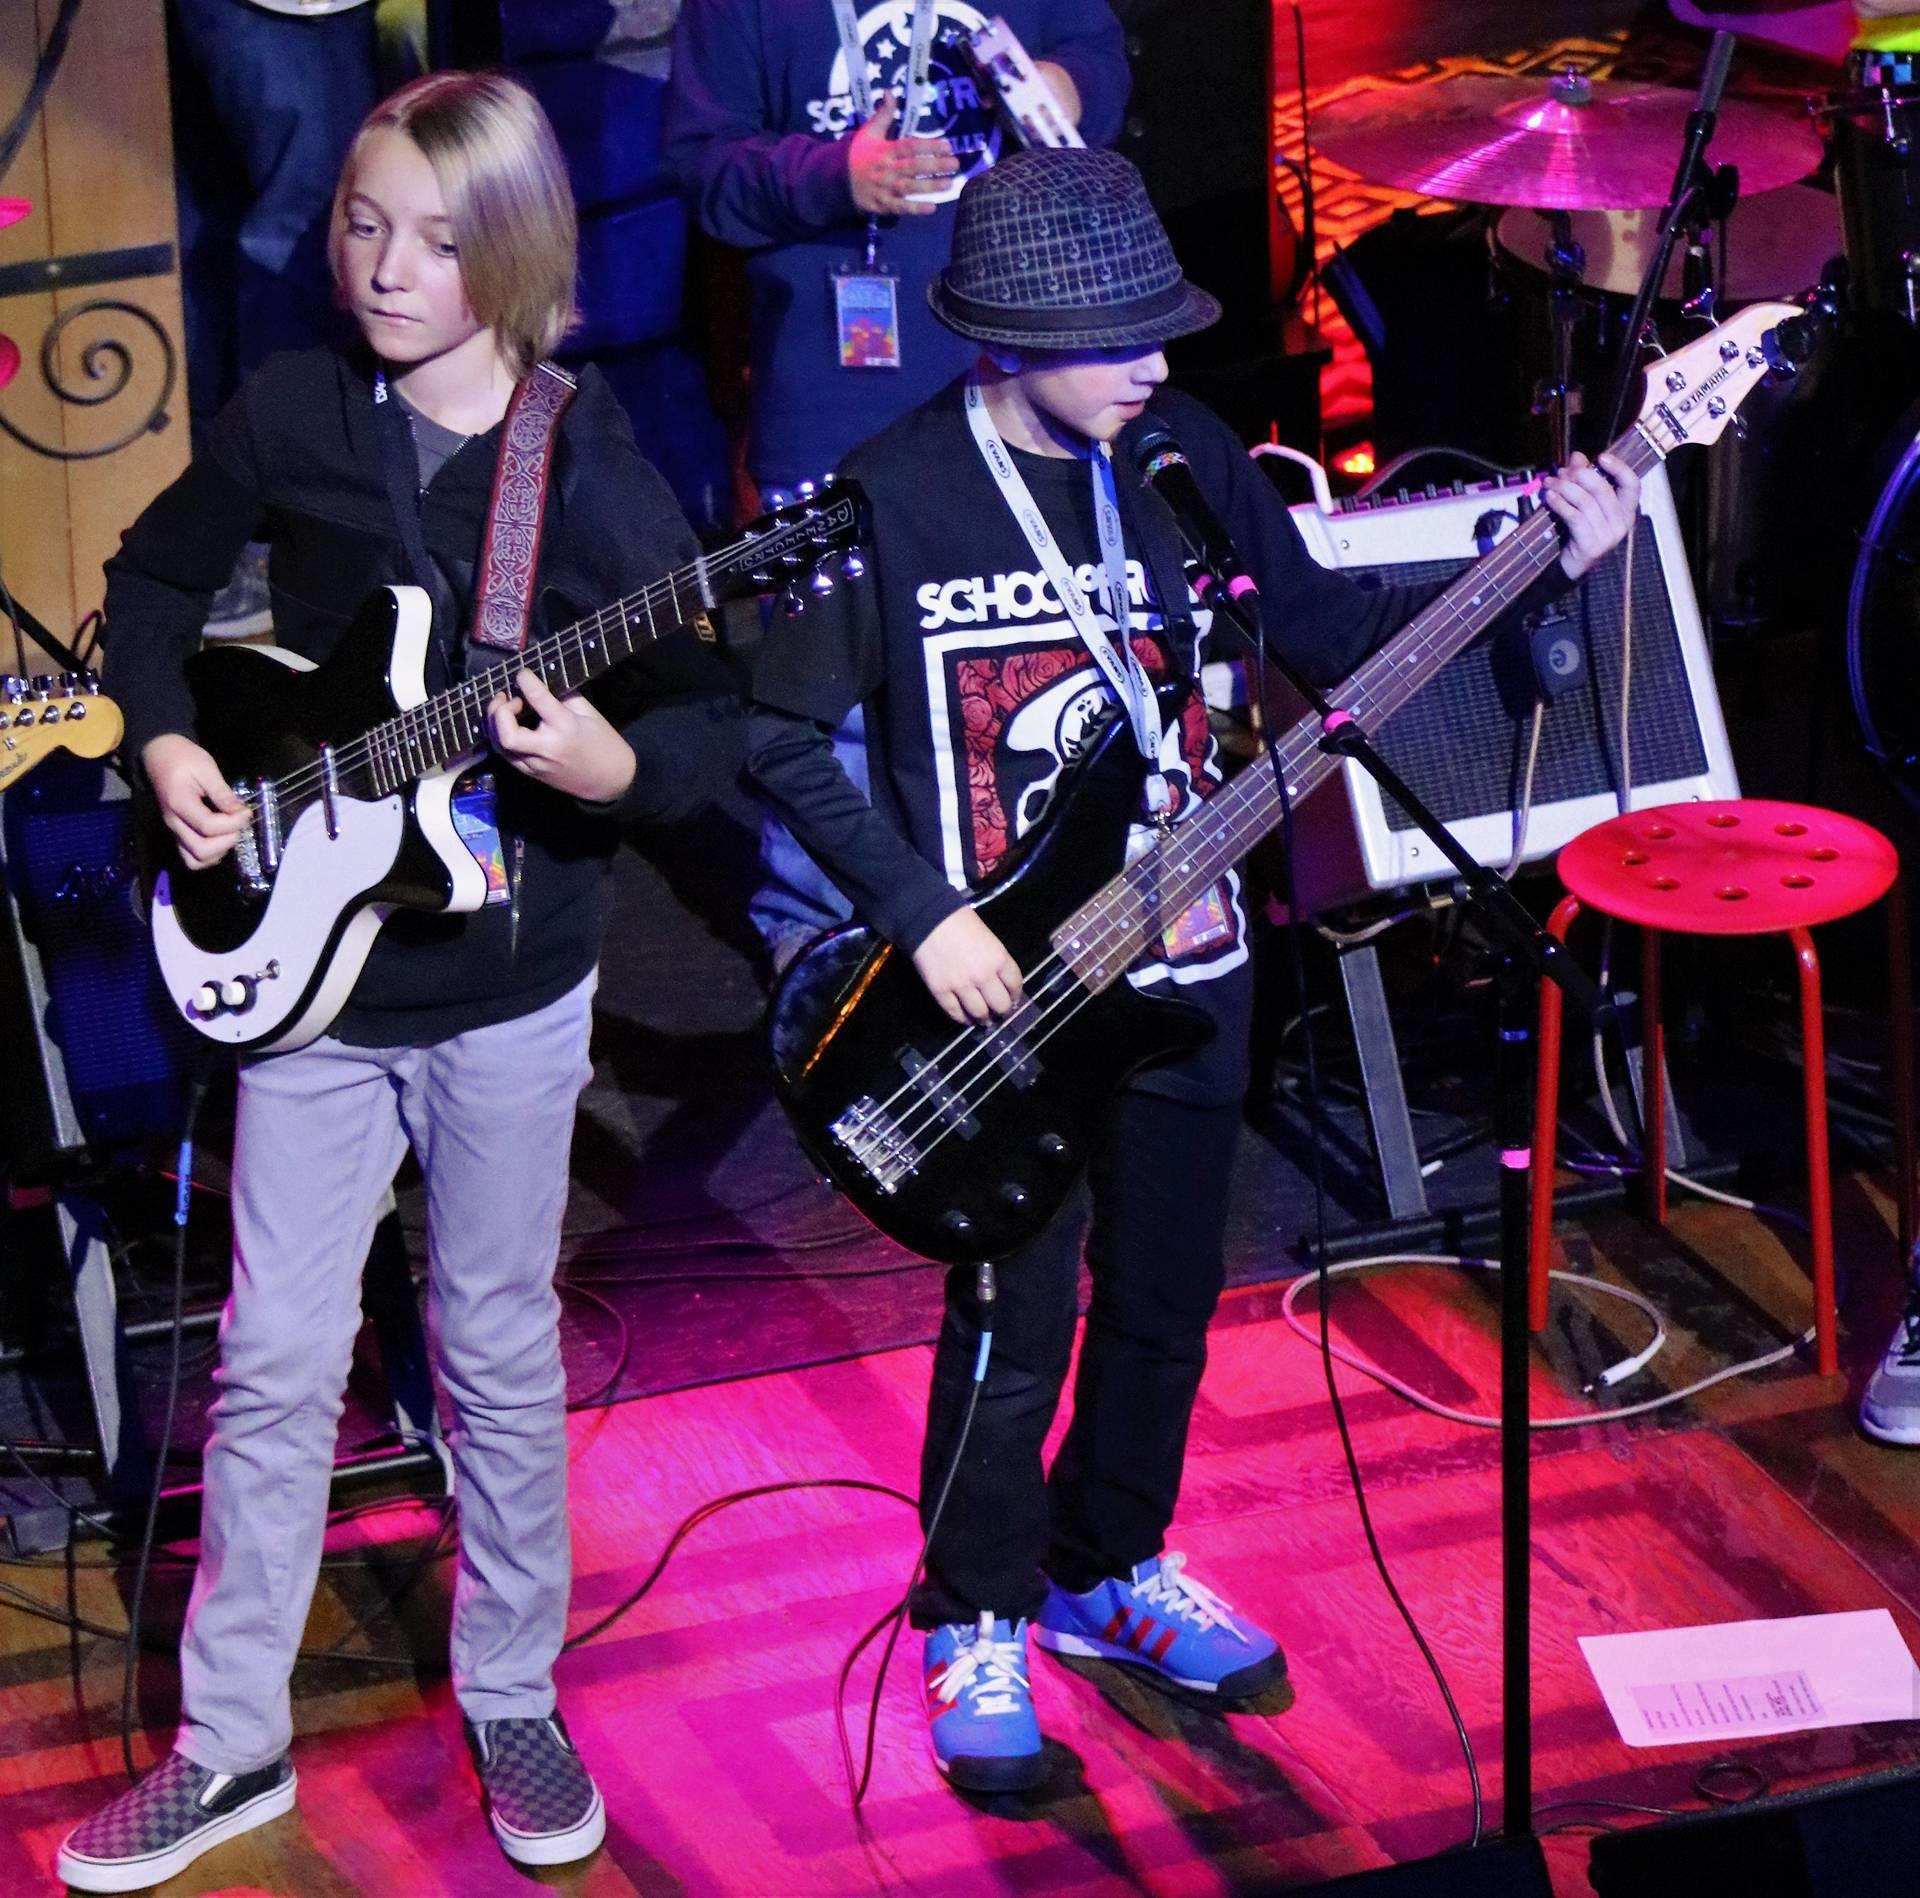 School of Rock Knoxville image 0